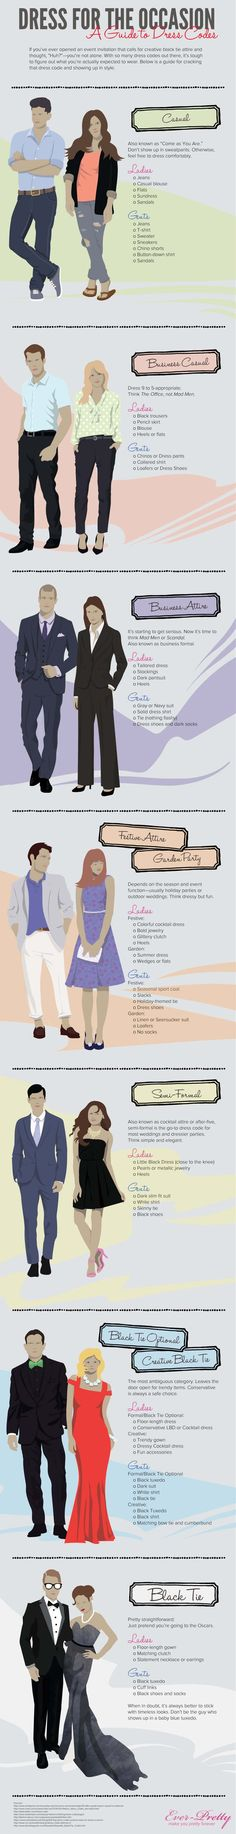 Dress for the Occasion: A Guide to Dress Codes